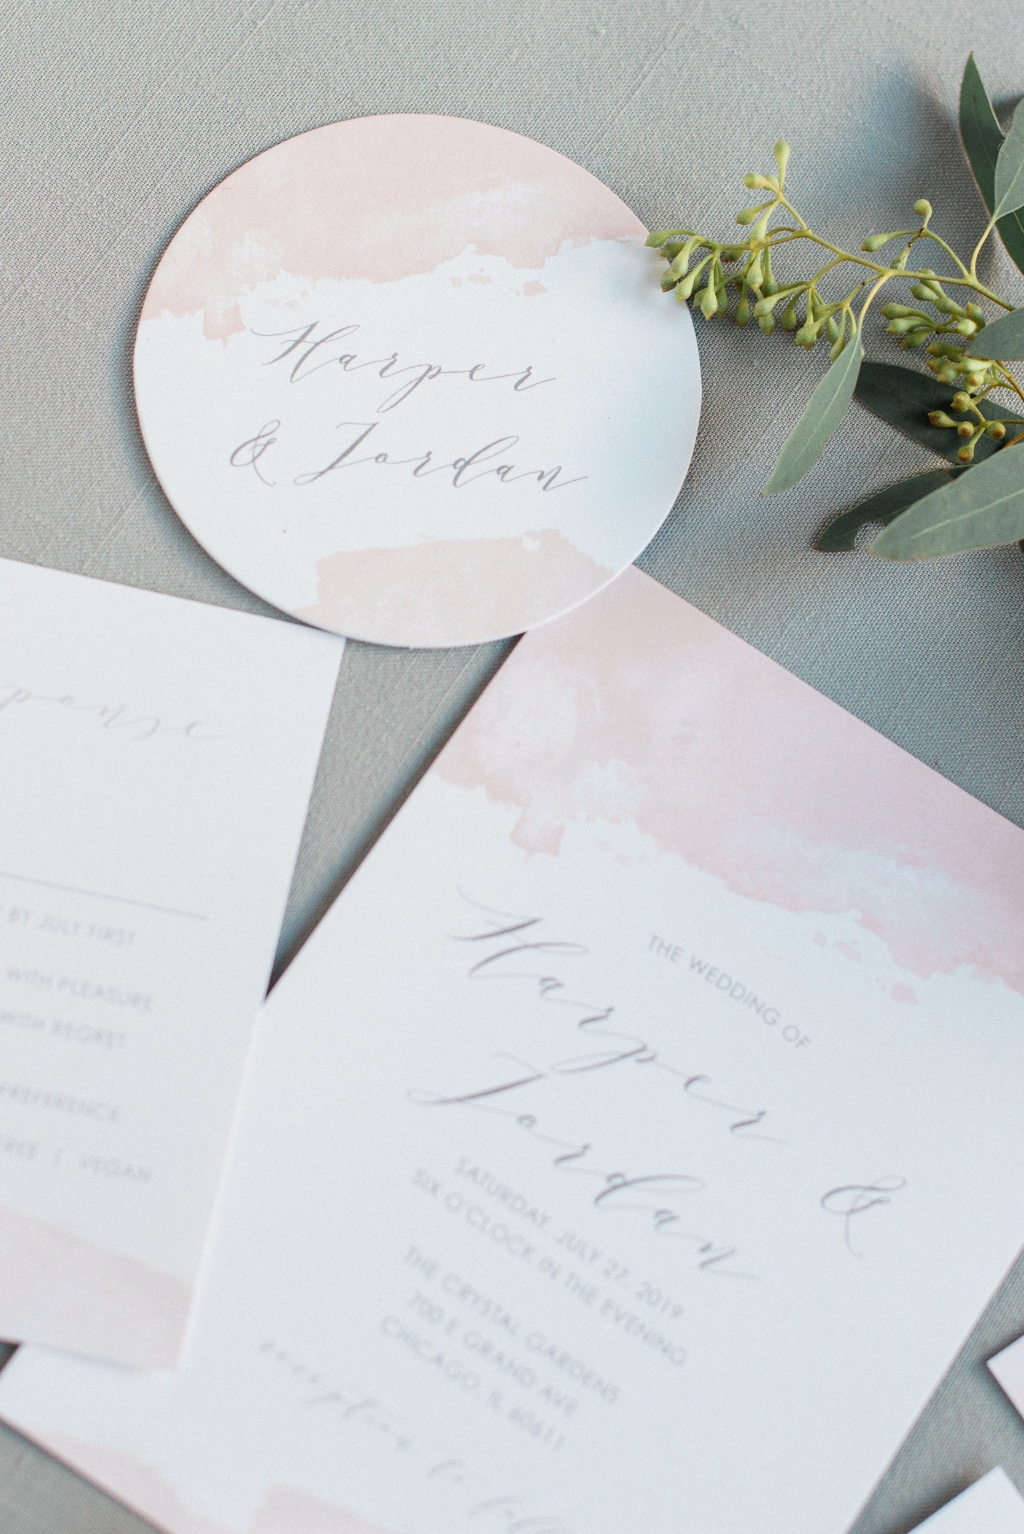 Add matching coasters to bring your Dip Dye Wedding Invitations Suite full circle. Your guests will appreciate little details that